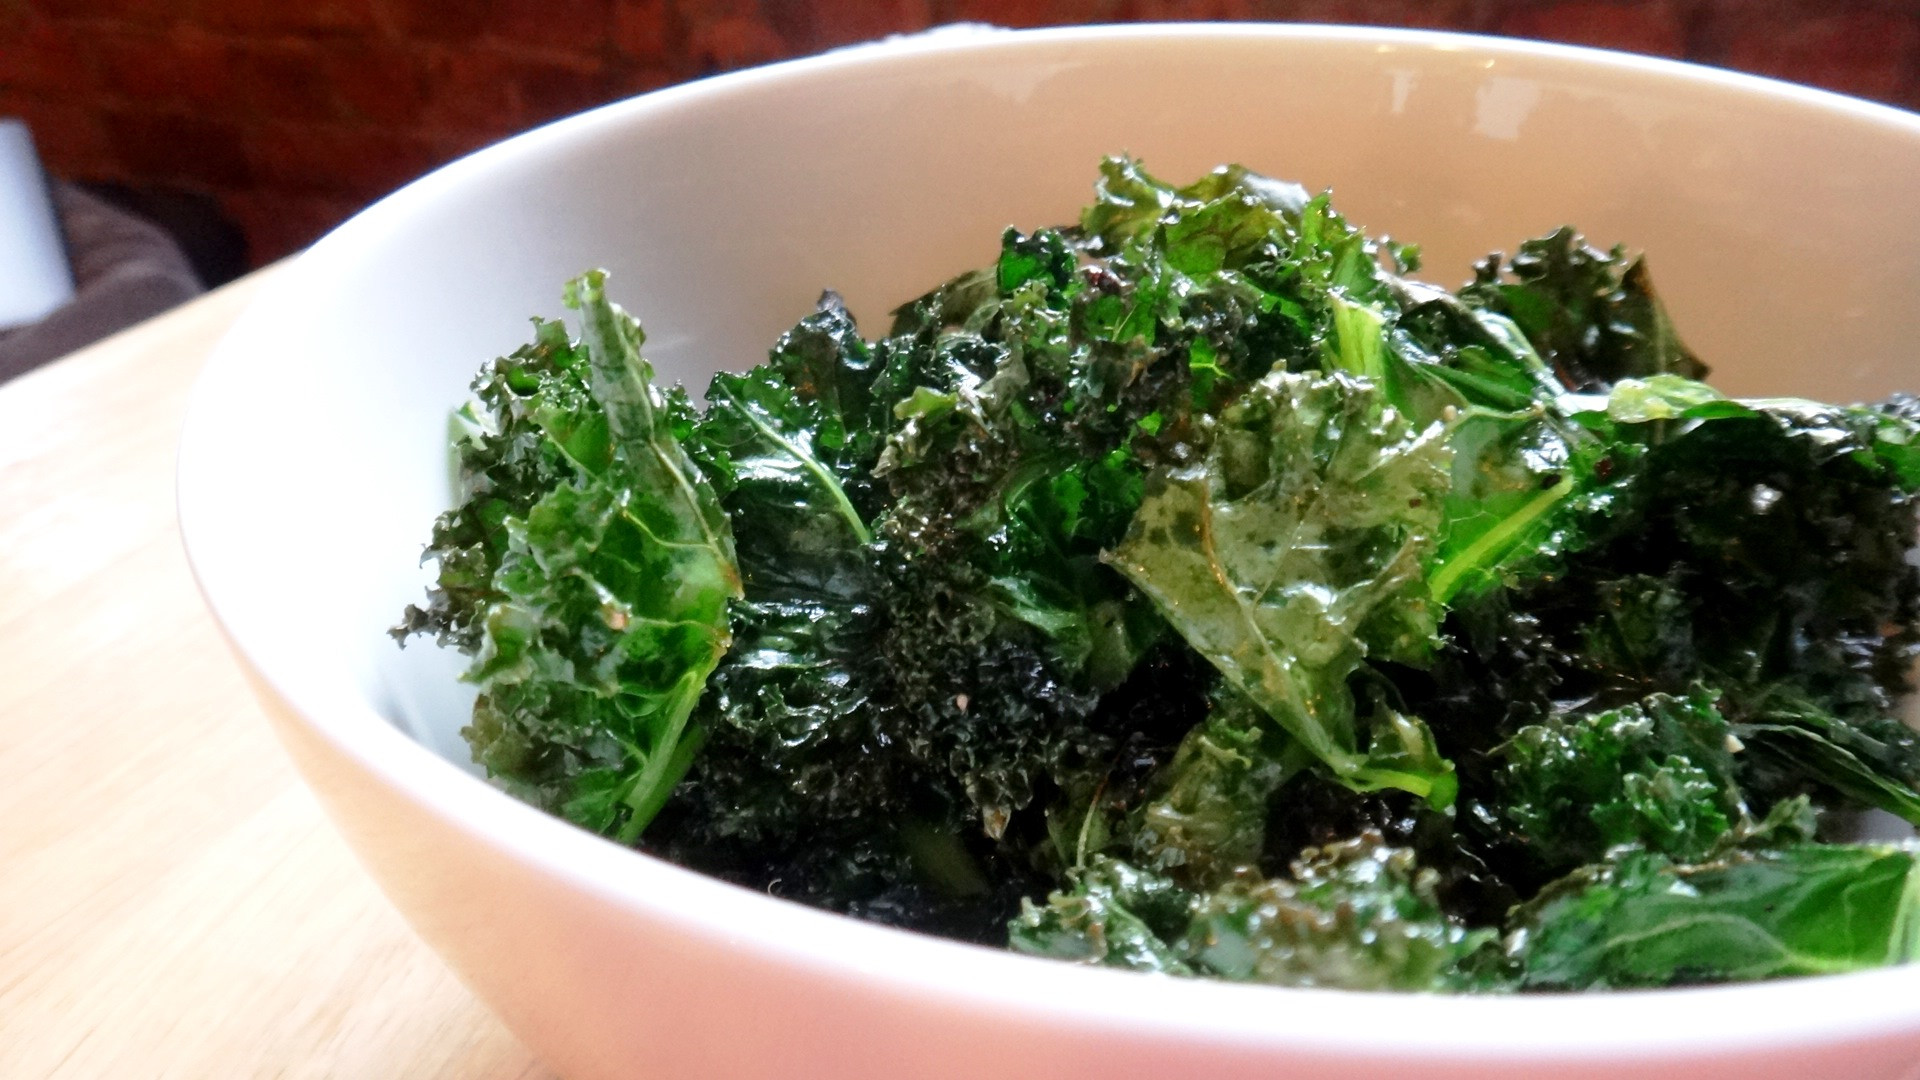 Healthy Snacks To Make At Home  How To Make Kale Chips at Home The Healthiest Snack